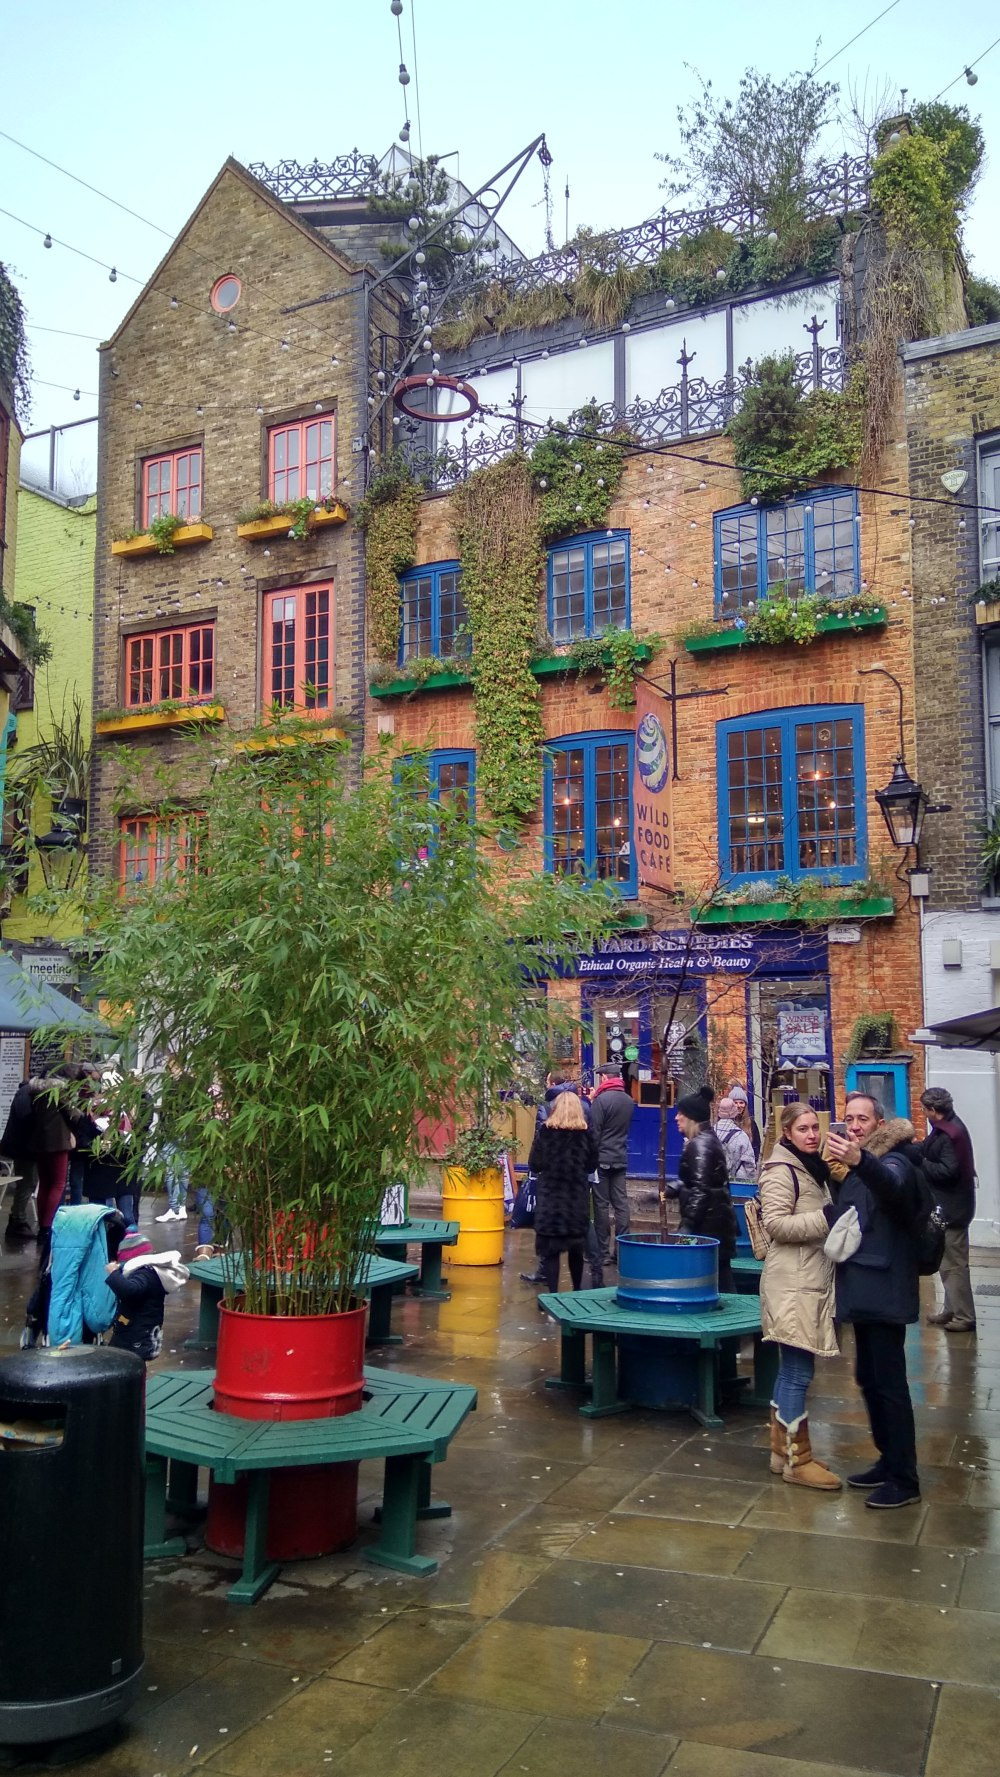 Neil's Yard in Covent Garden, London.